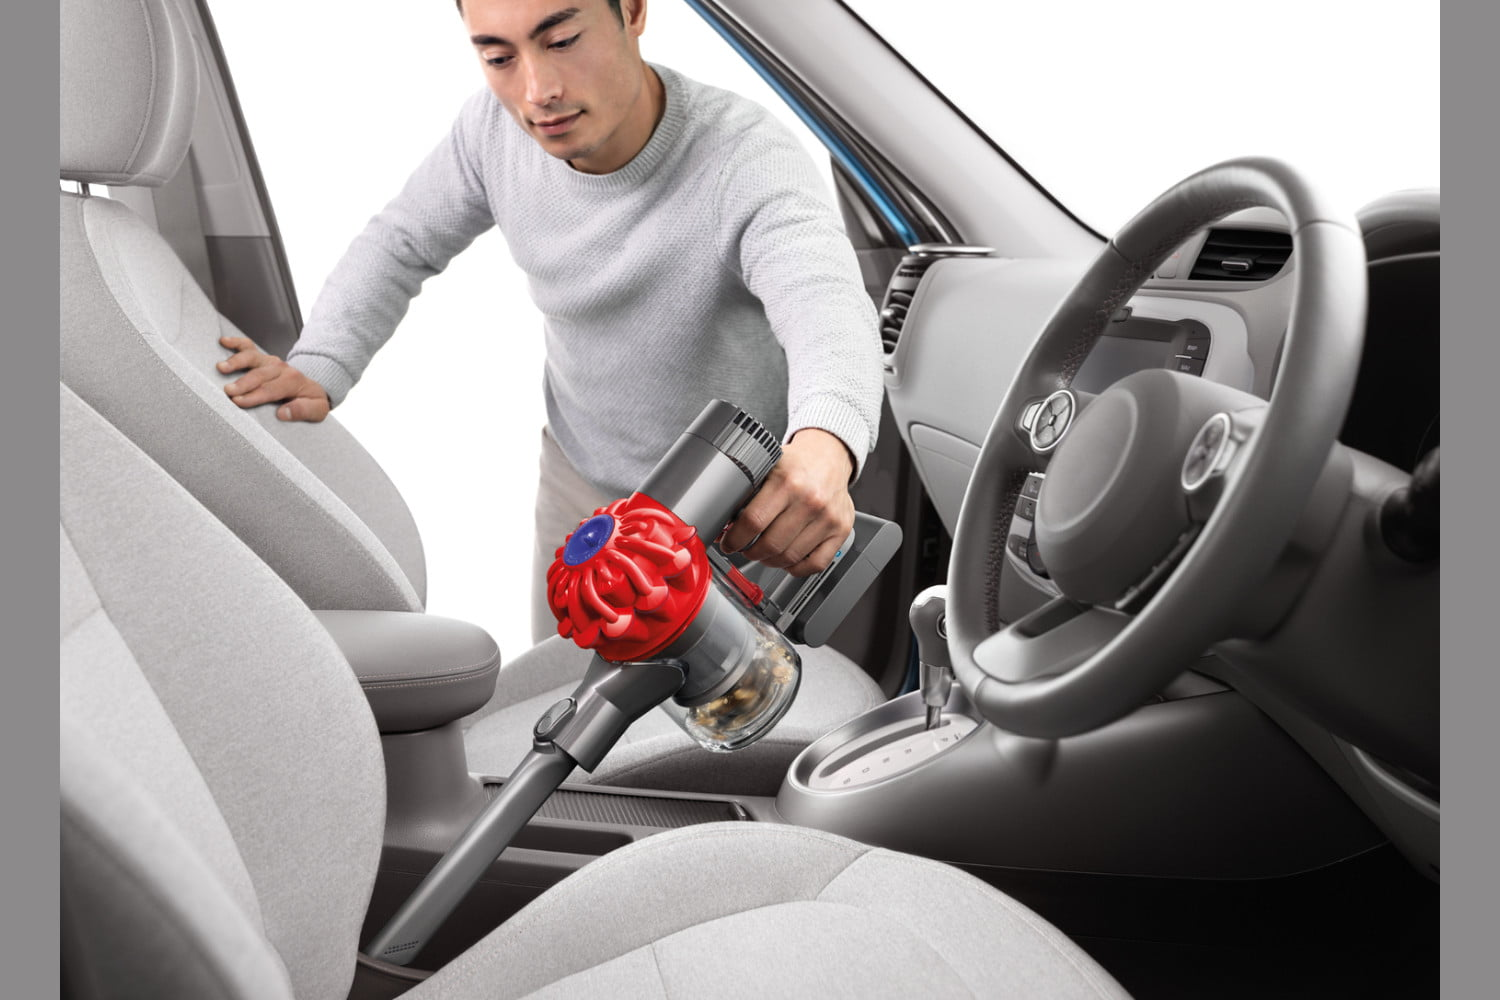 walmart knocks down prices on dyson handheld vacuums in post prime day sale v6 trigger vacuum car  boat 5